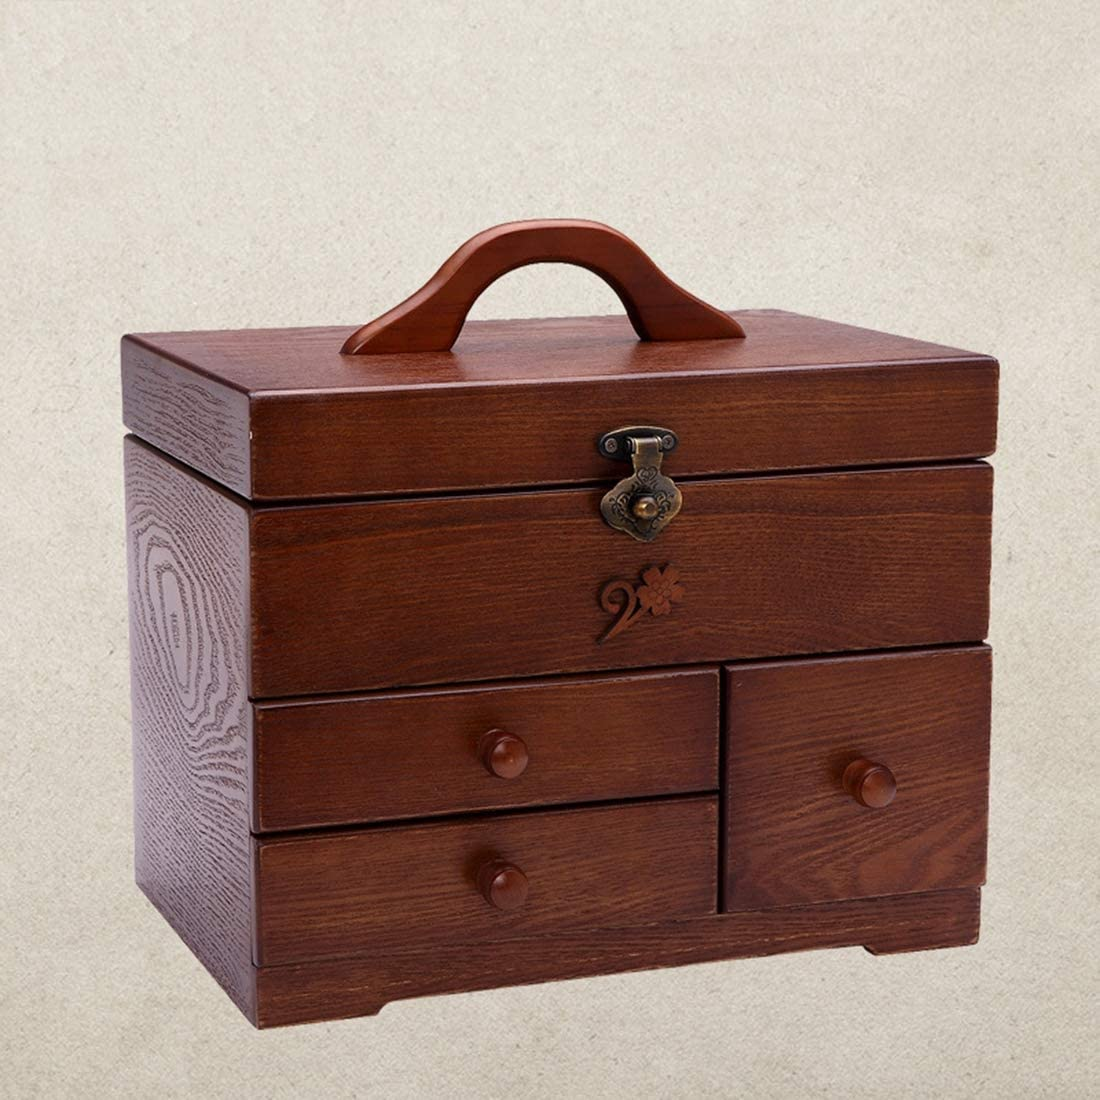 Antique Wooden Sewing Basket – 3 Industry No. 1 Layer DIY Sales results No. 1 Supplies Darning